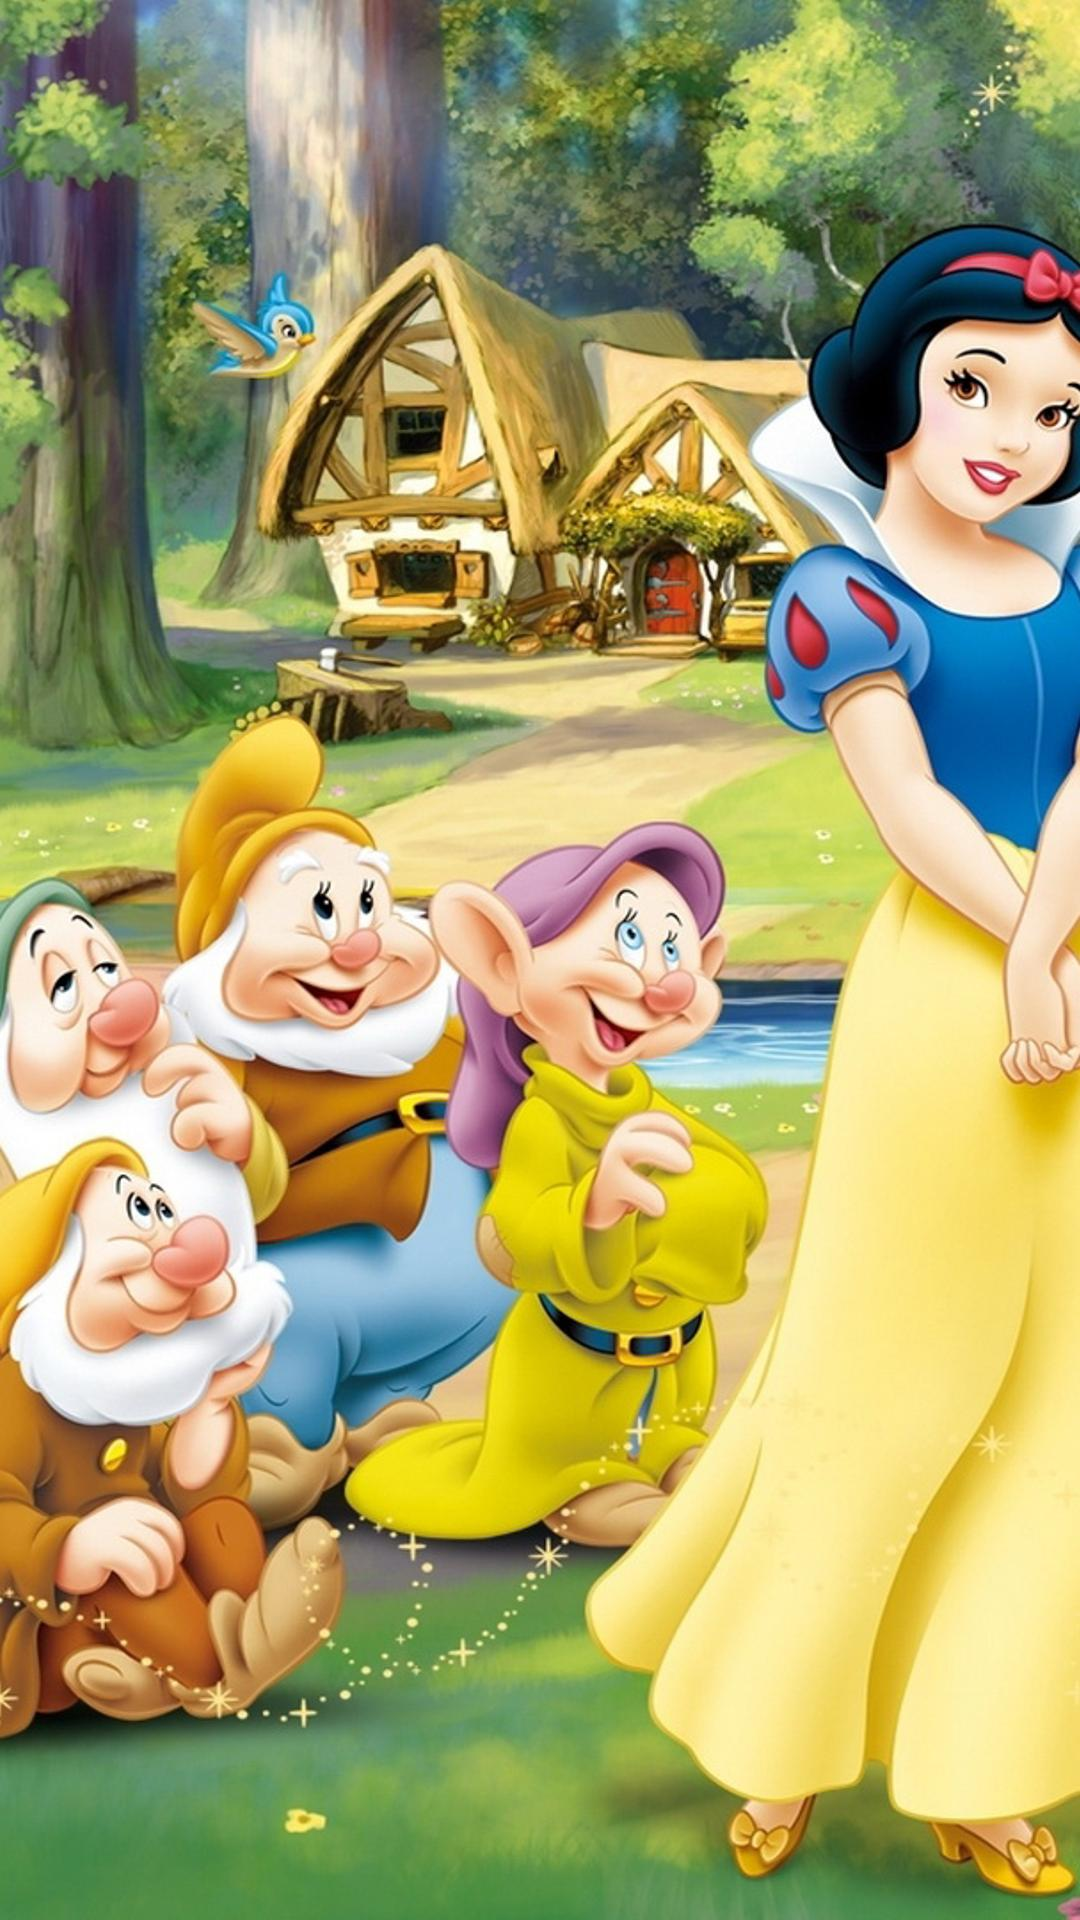 Snow white and the seven dwarfs 3d  erotic picture